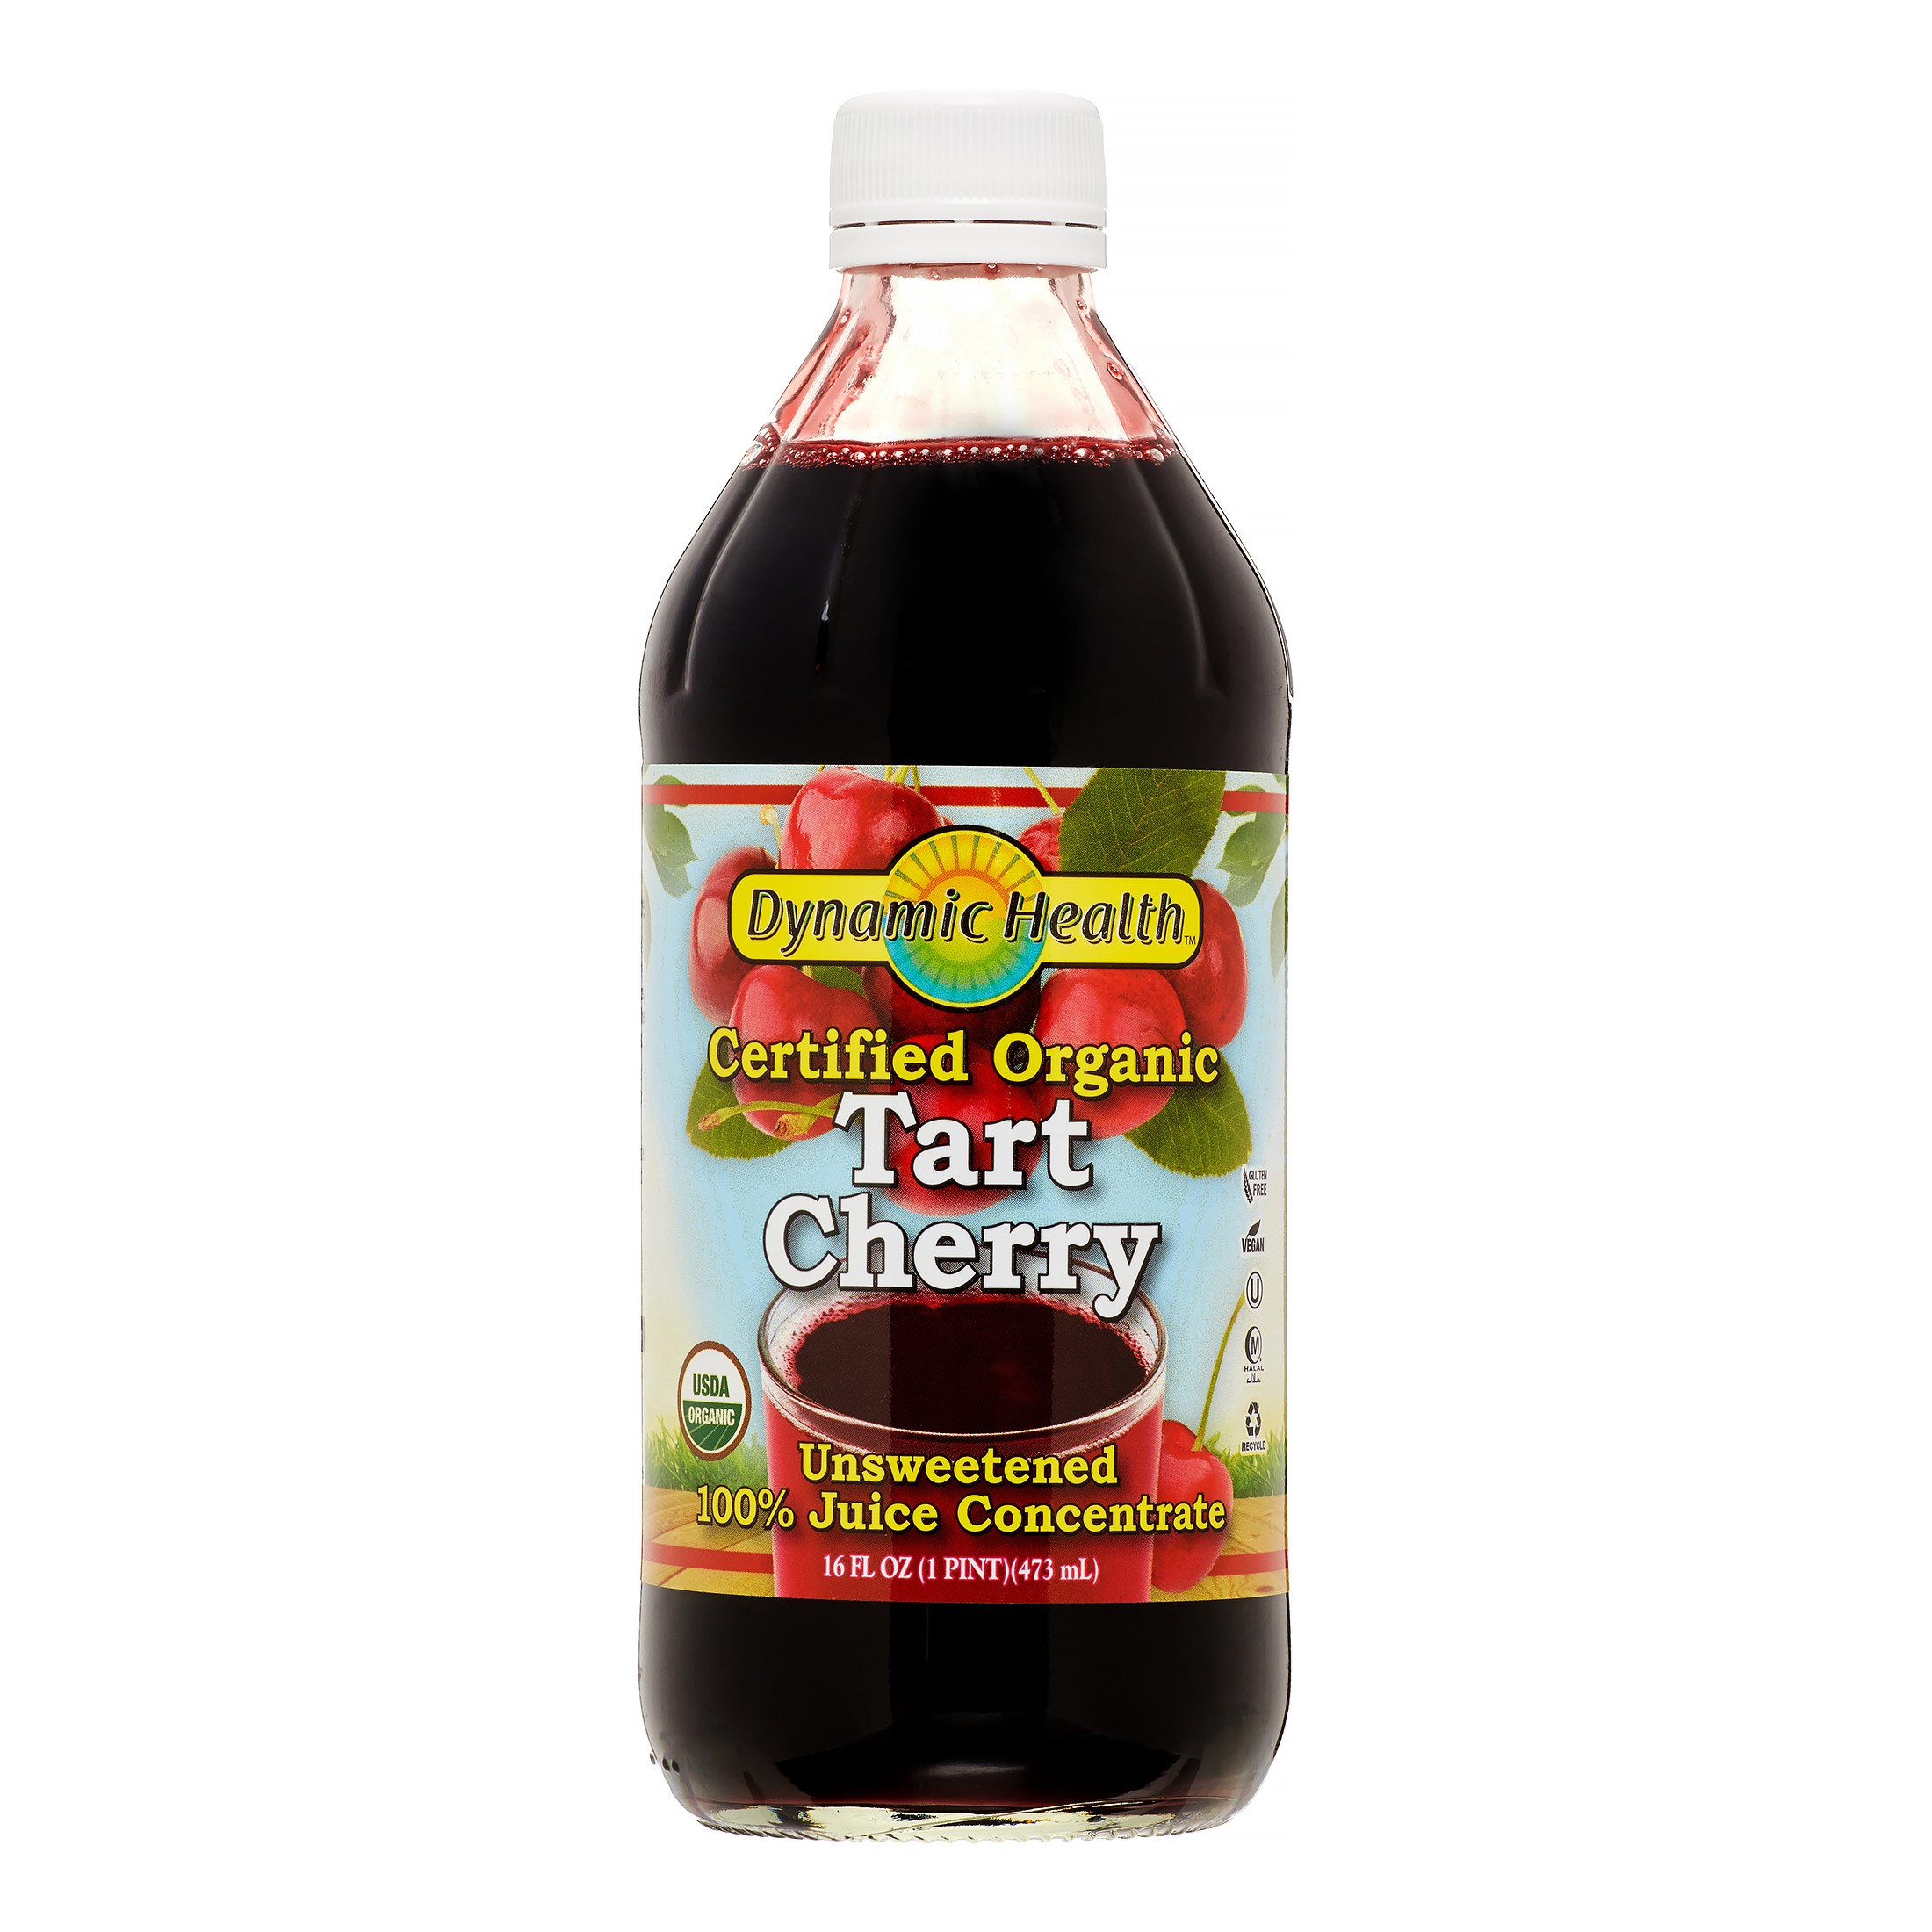 Dynamic Health 100% Pure Organic Juice, Tart Cherry, 16 Oz by Dynamic Health Laboratories Inc